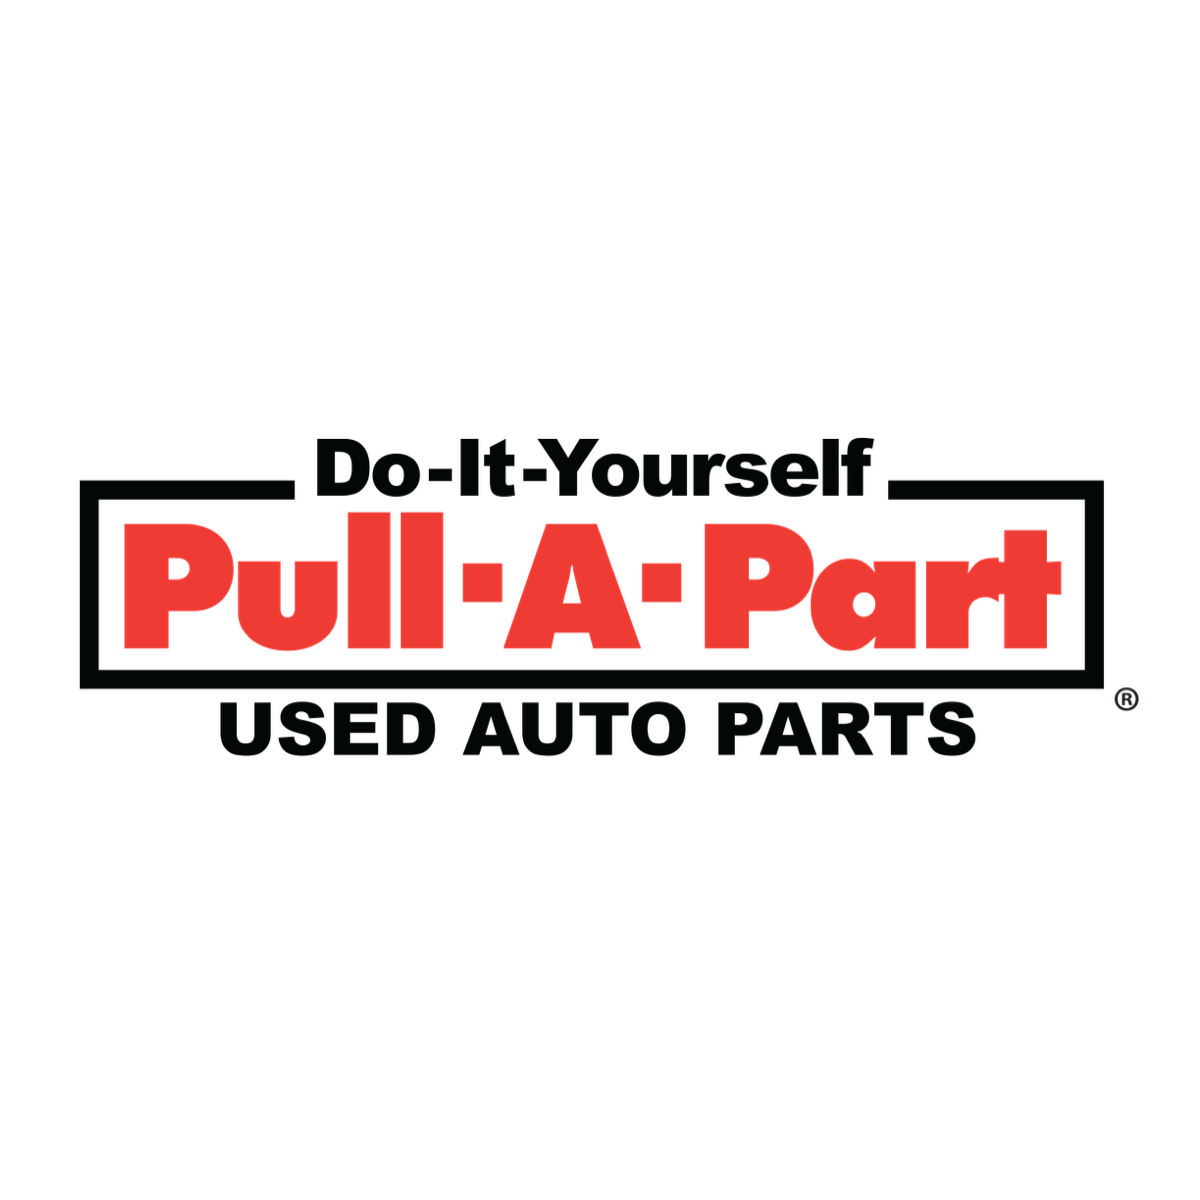 Pull-A-Part Un-Junkyard: Used Auto Parts & Auto Salvage in Baton Rouge